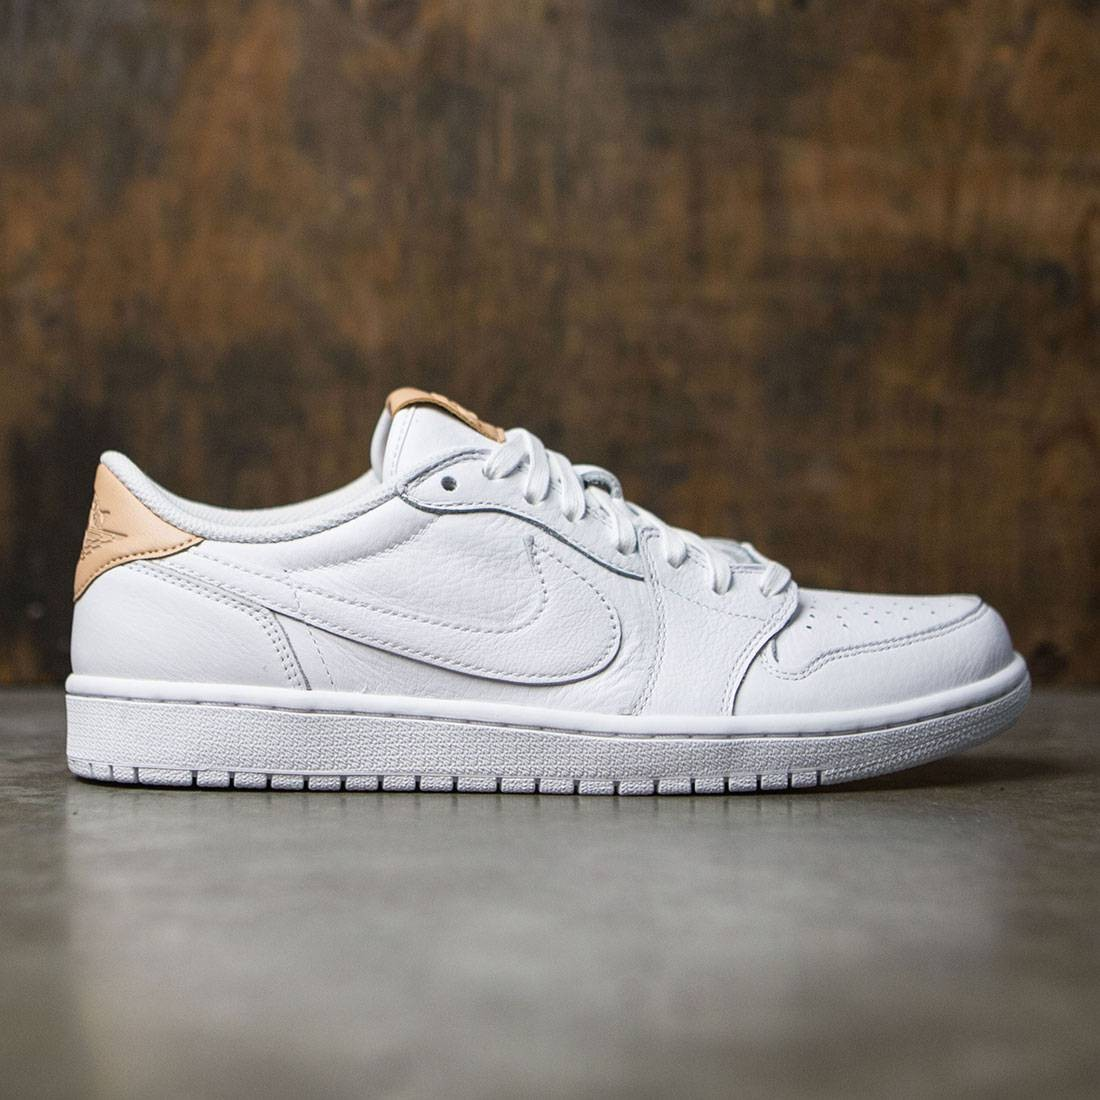 bf82cd9fe588ed jordan men air jordan 1 retro low og premium white vachetta tan white